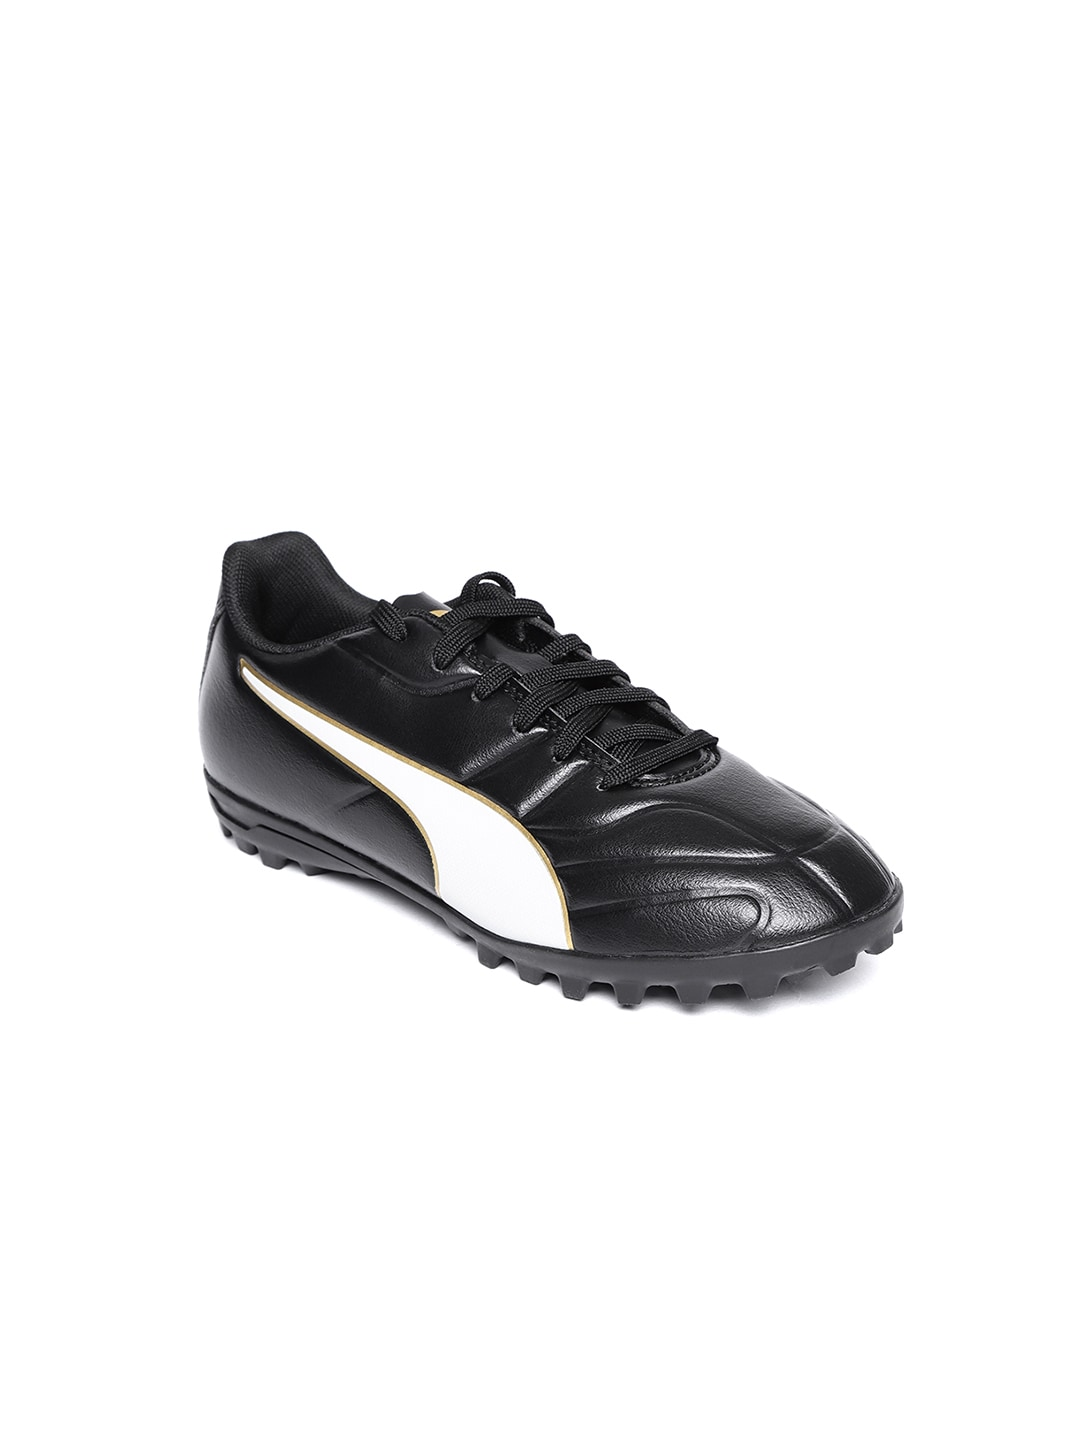 19ae78dee64 Sale Sports Shoes - Buy Sale Sports Shoes Online in India